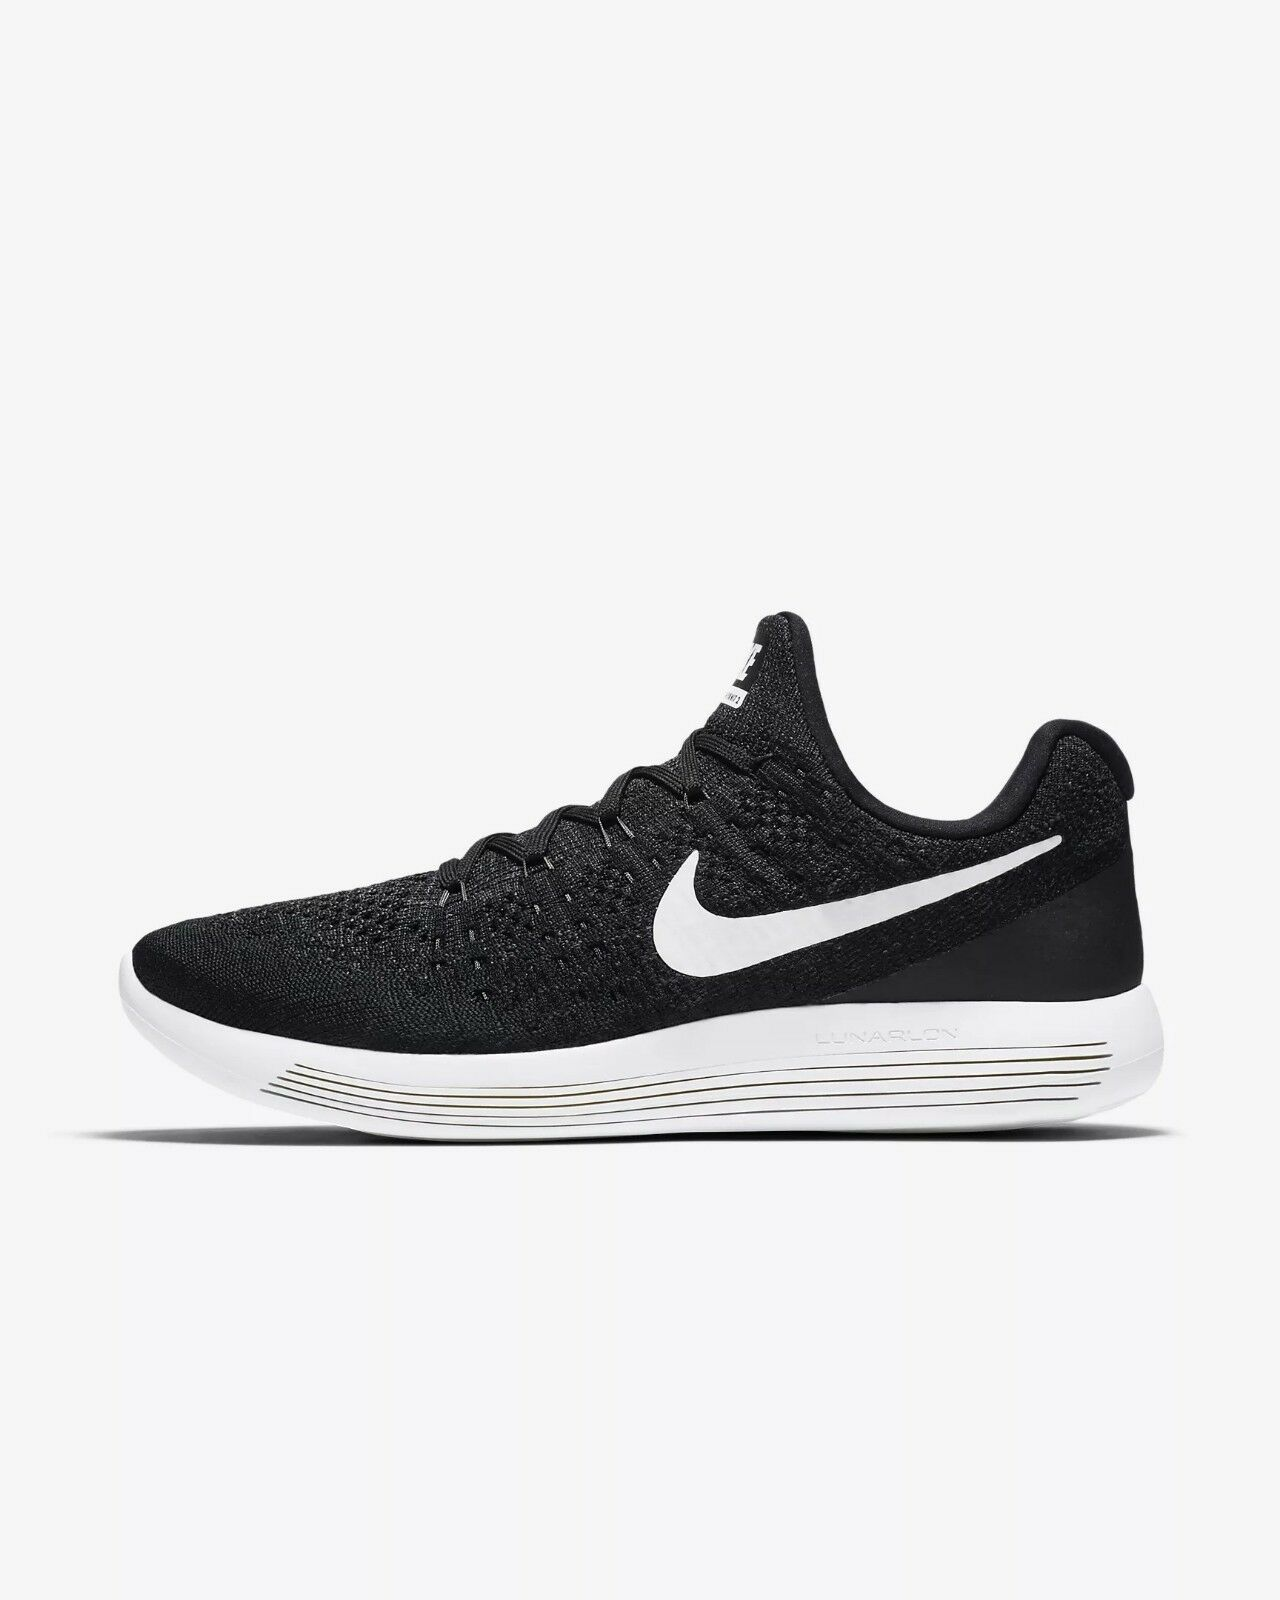 Men's Nike LunarEpic Low Flyknit 2 Running shoes, 863779 001 Mult Sizes Black Wh